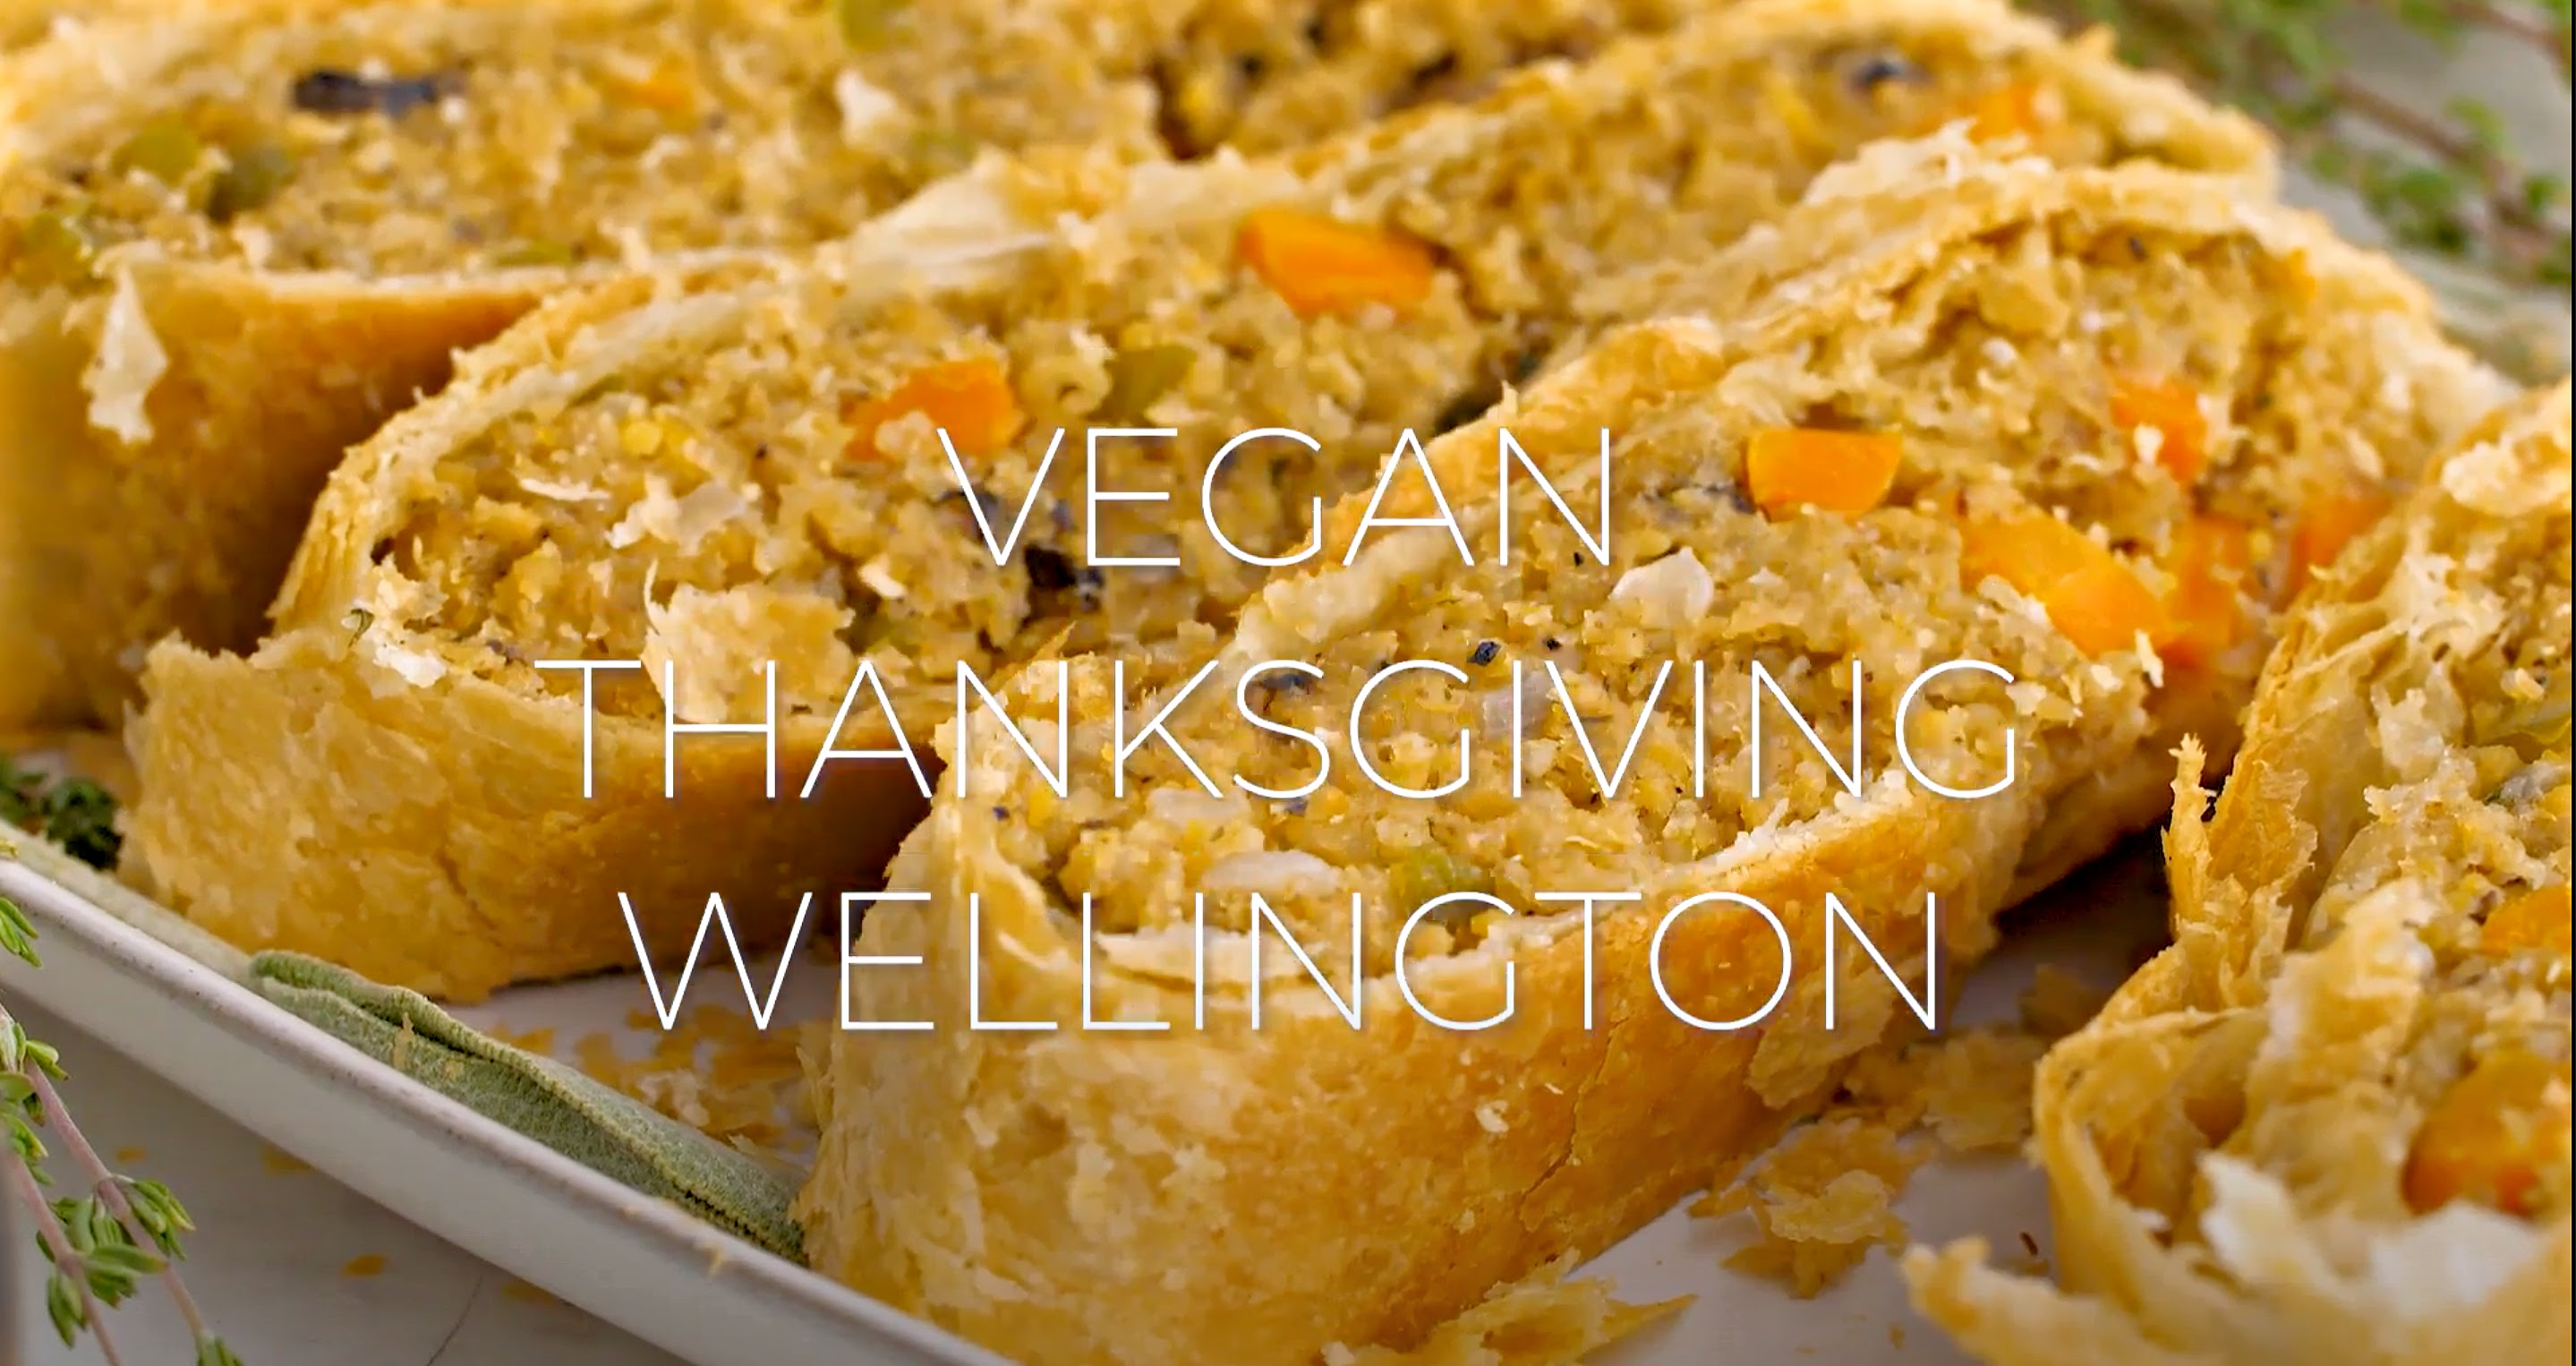 Vegan Thanksgiving Wellington - Loaded with savory quinoa, garbanzo beans, and veggies, then wrapped and baked in puff pastry.  via @thiswifecooks